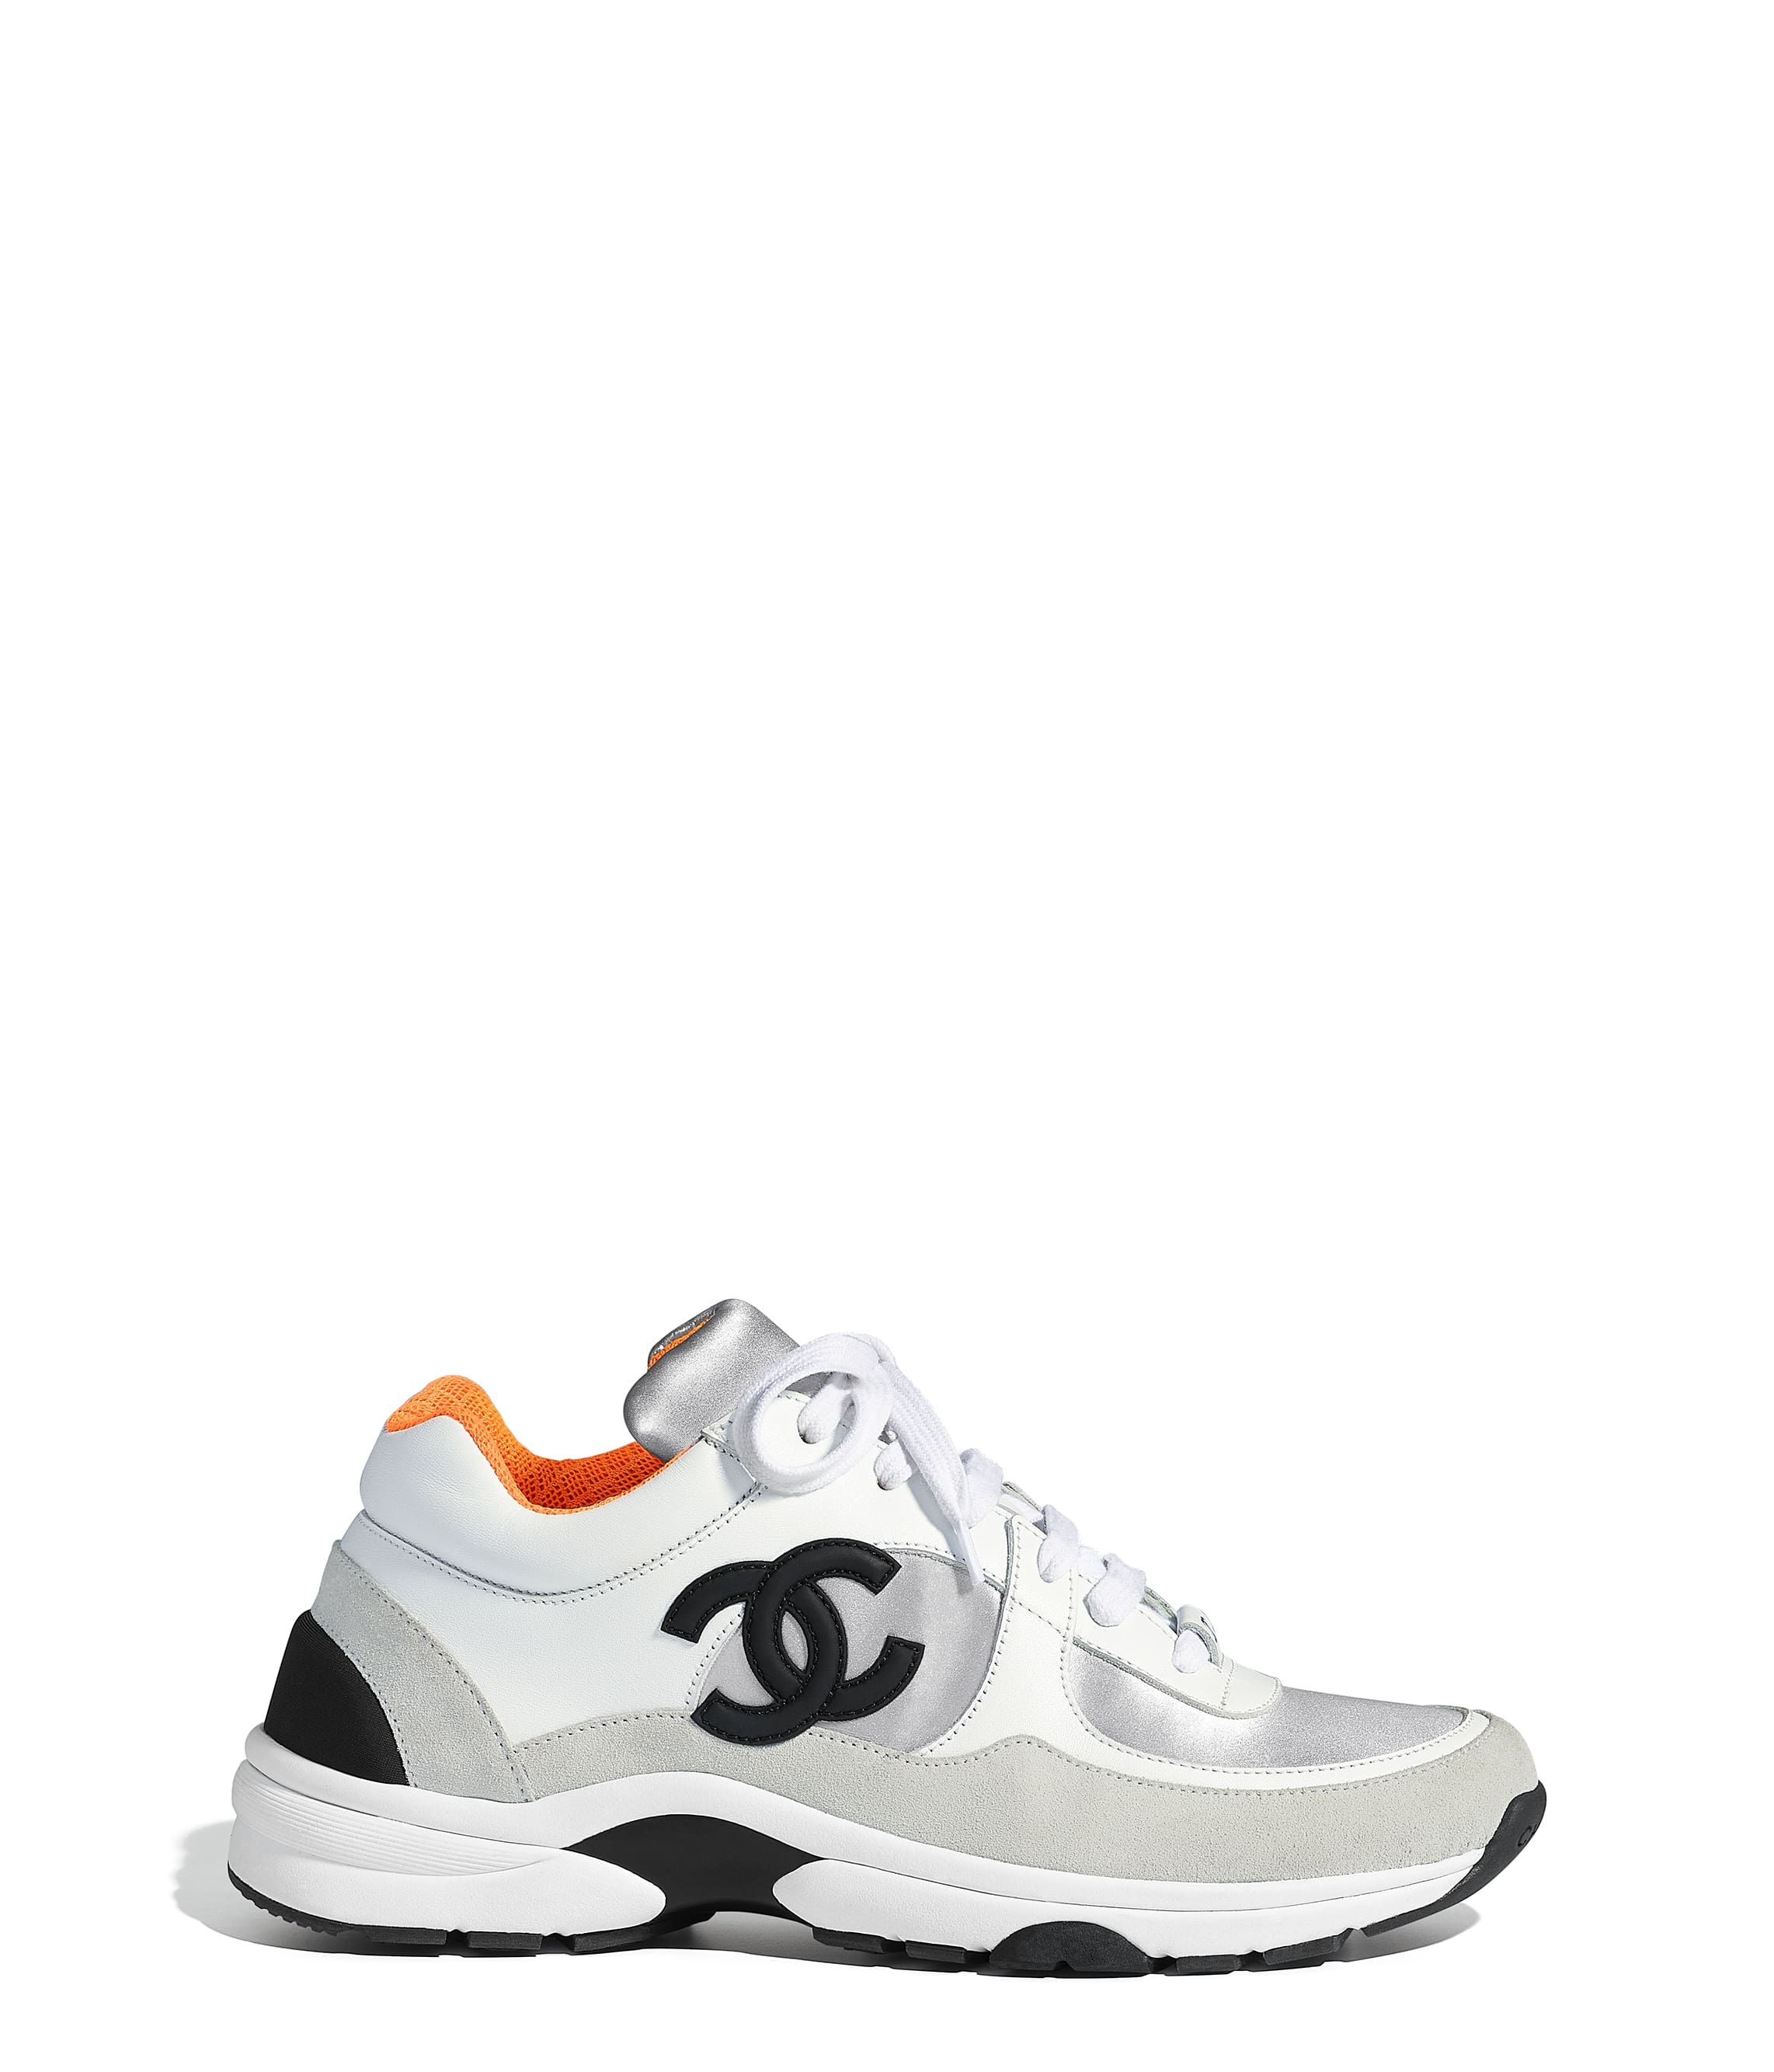 2395d7315 Sneakers, calfskin & fabric, white, silver & orange - CHANEL | Shoes ...